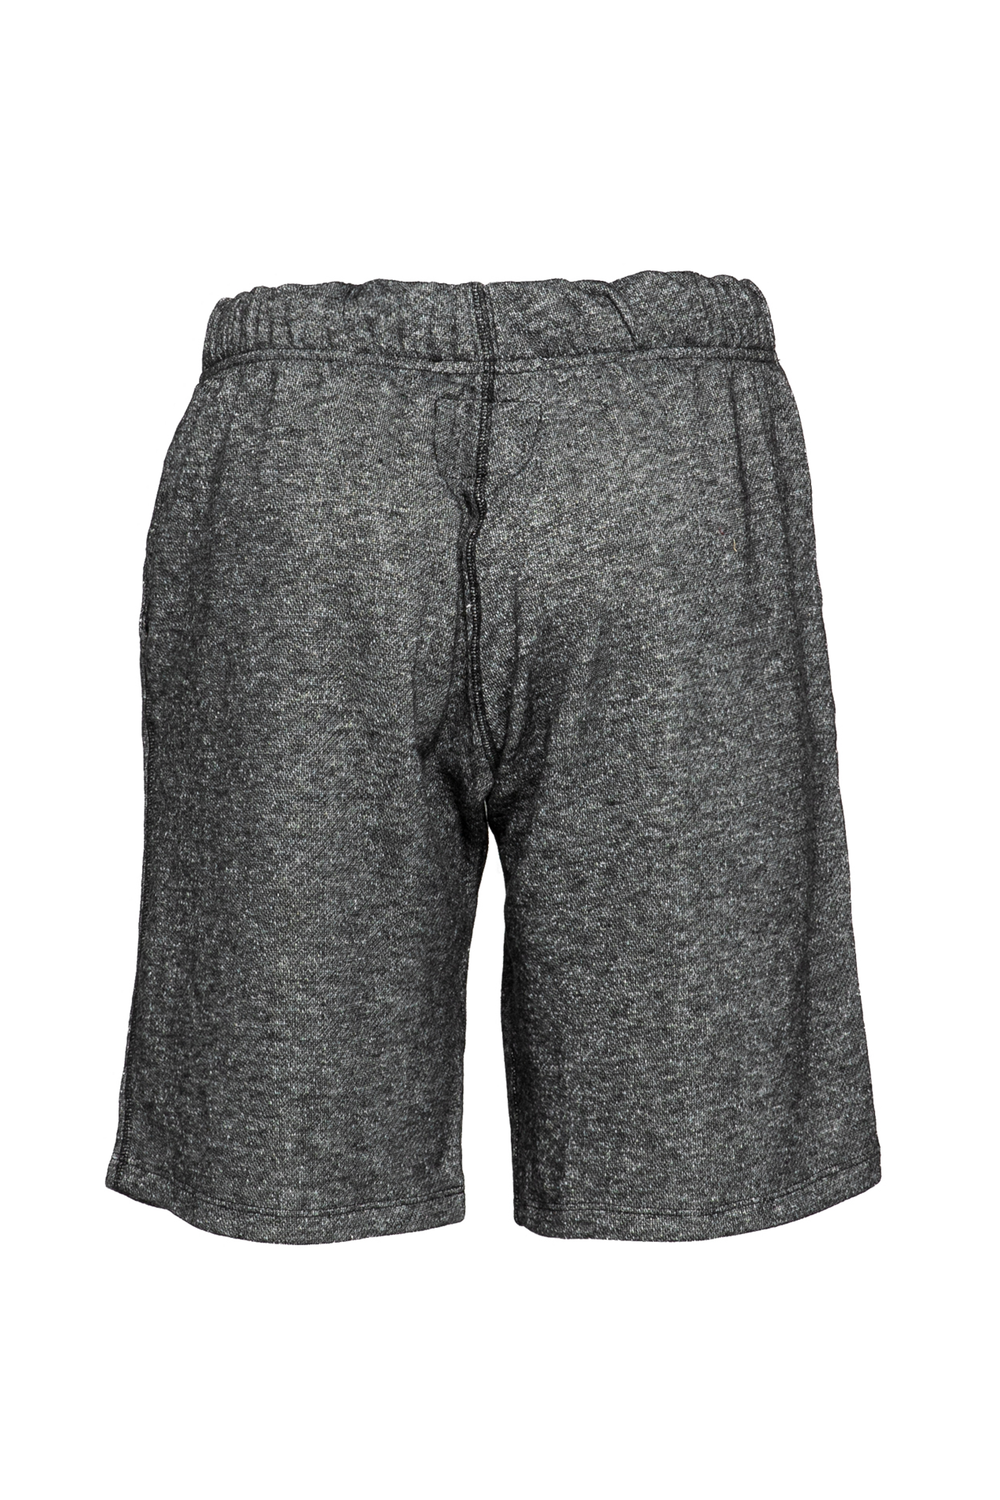 Emerson Shorts - Charcoal